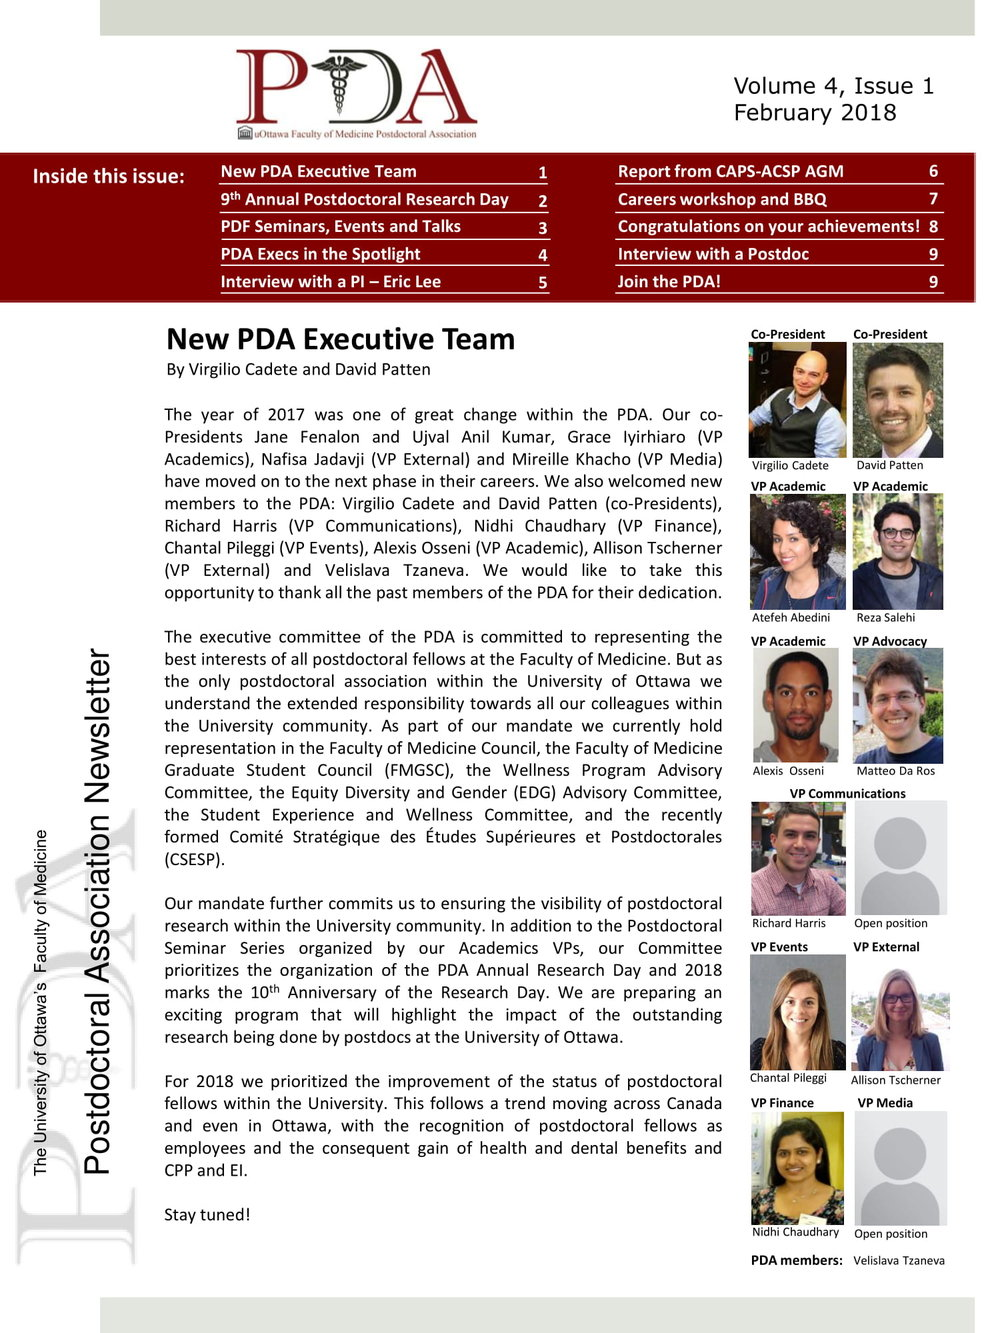 PDA_Newsletter_Volume_4_Issue_1-1.jpg